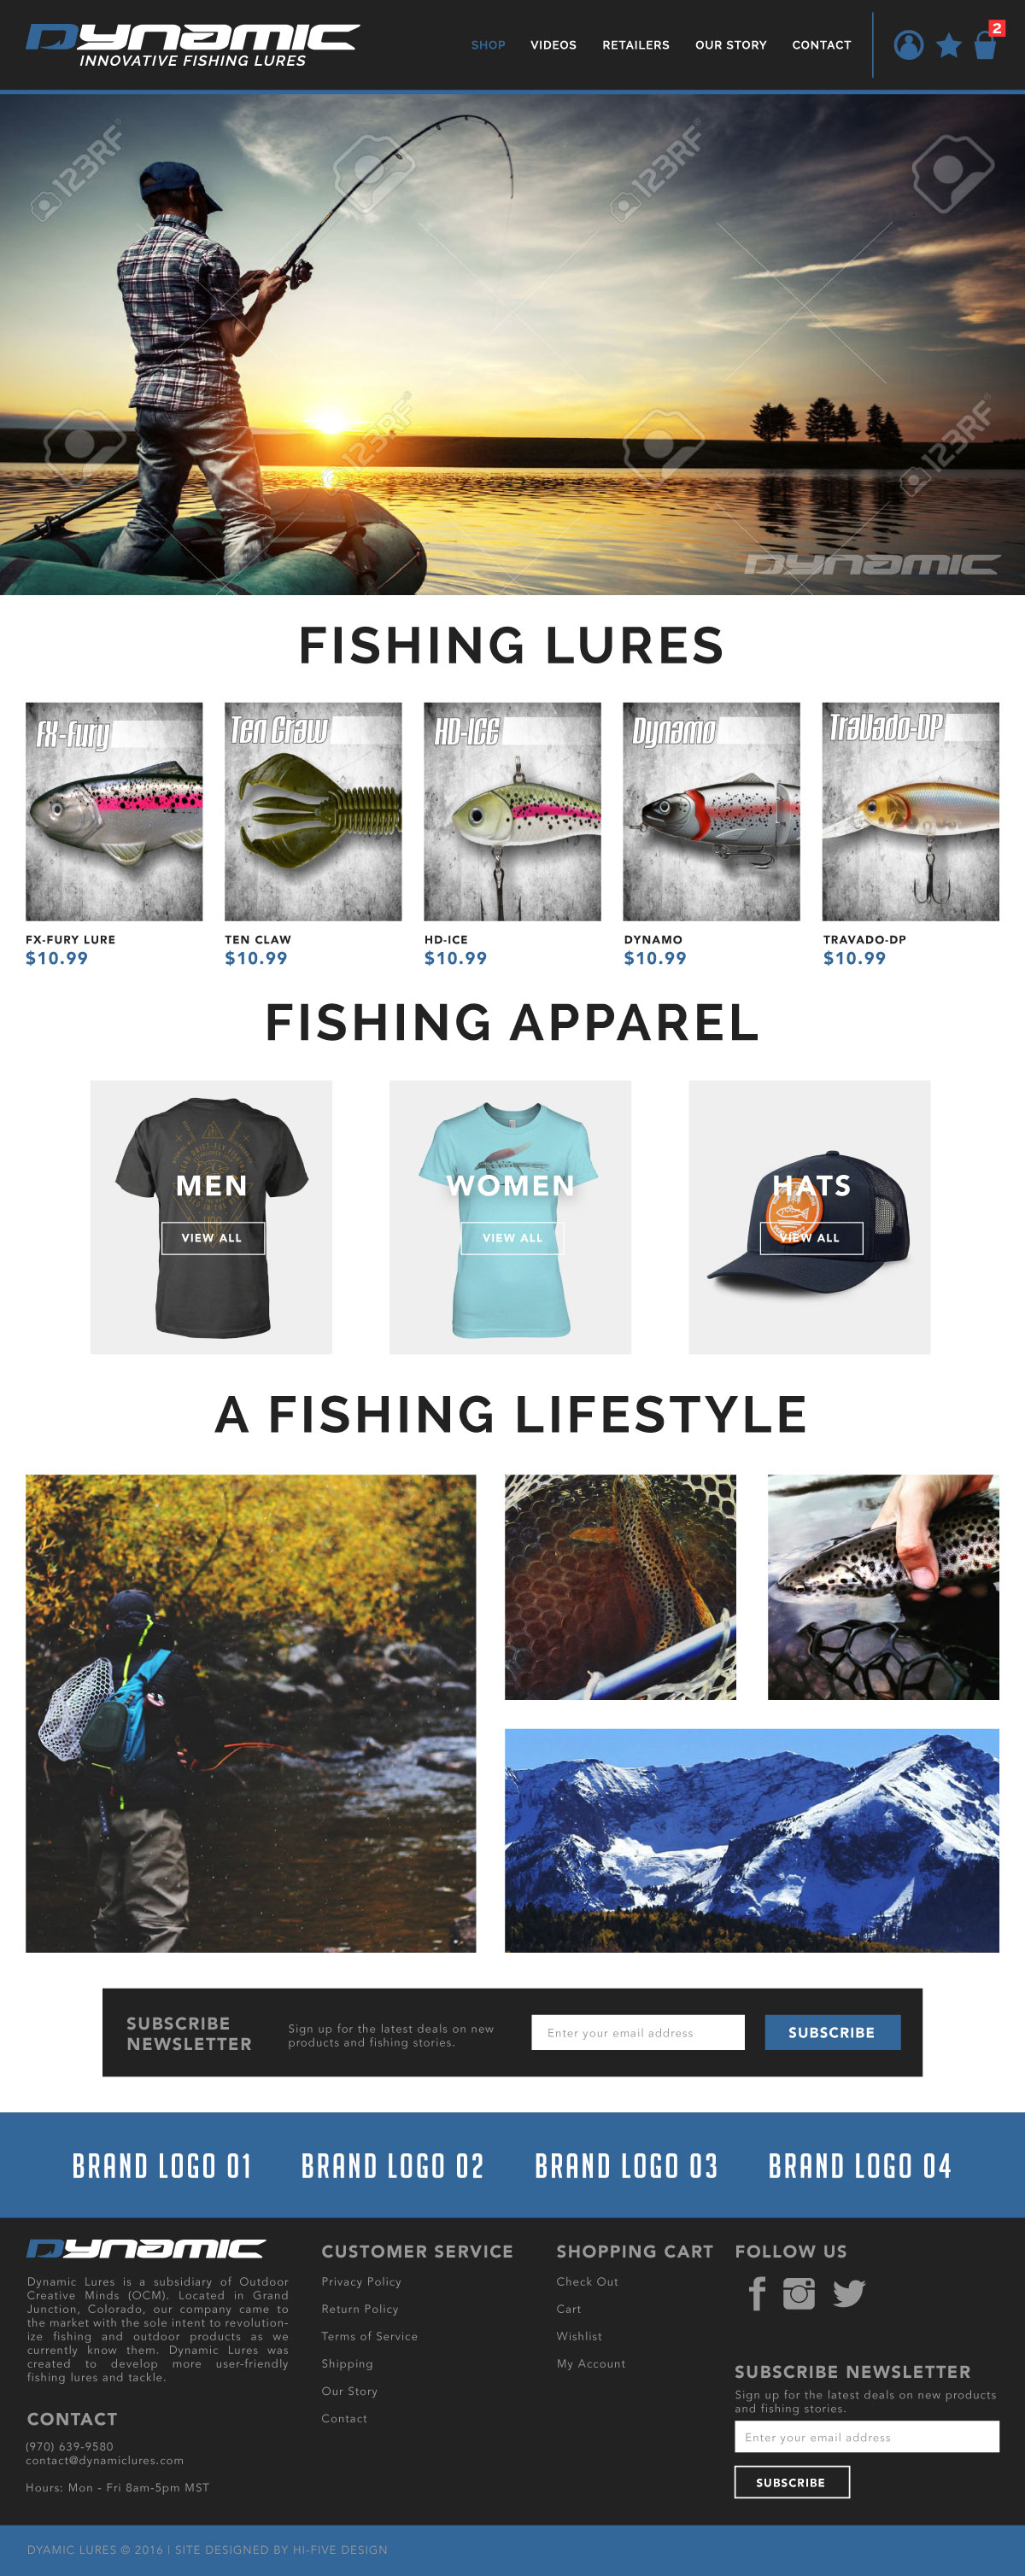 fishing logo, fly fishing logo, fishing shirt, fly fishing shirt, fishing patch, fly fishing patch, fishing apparel, fly fishing apparel, fishing website design, colorado fishing website, fishing website designer, website designer colorado